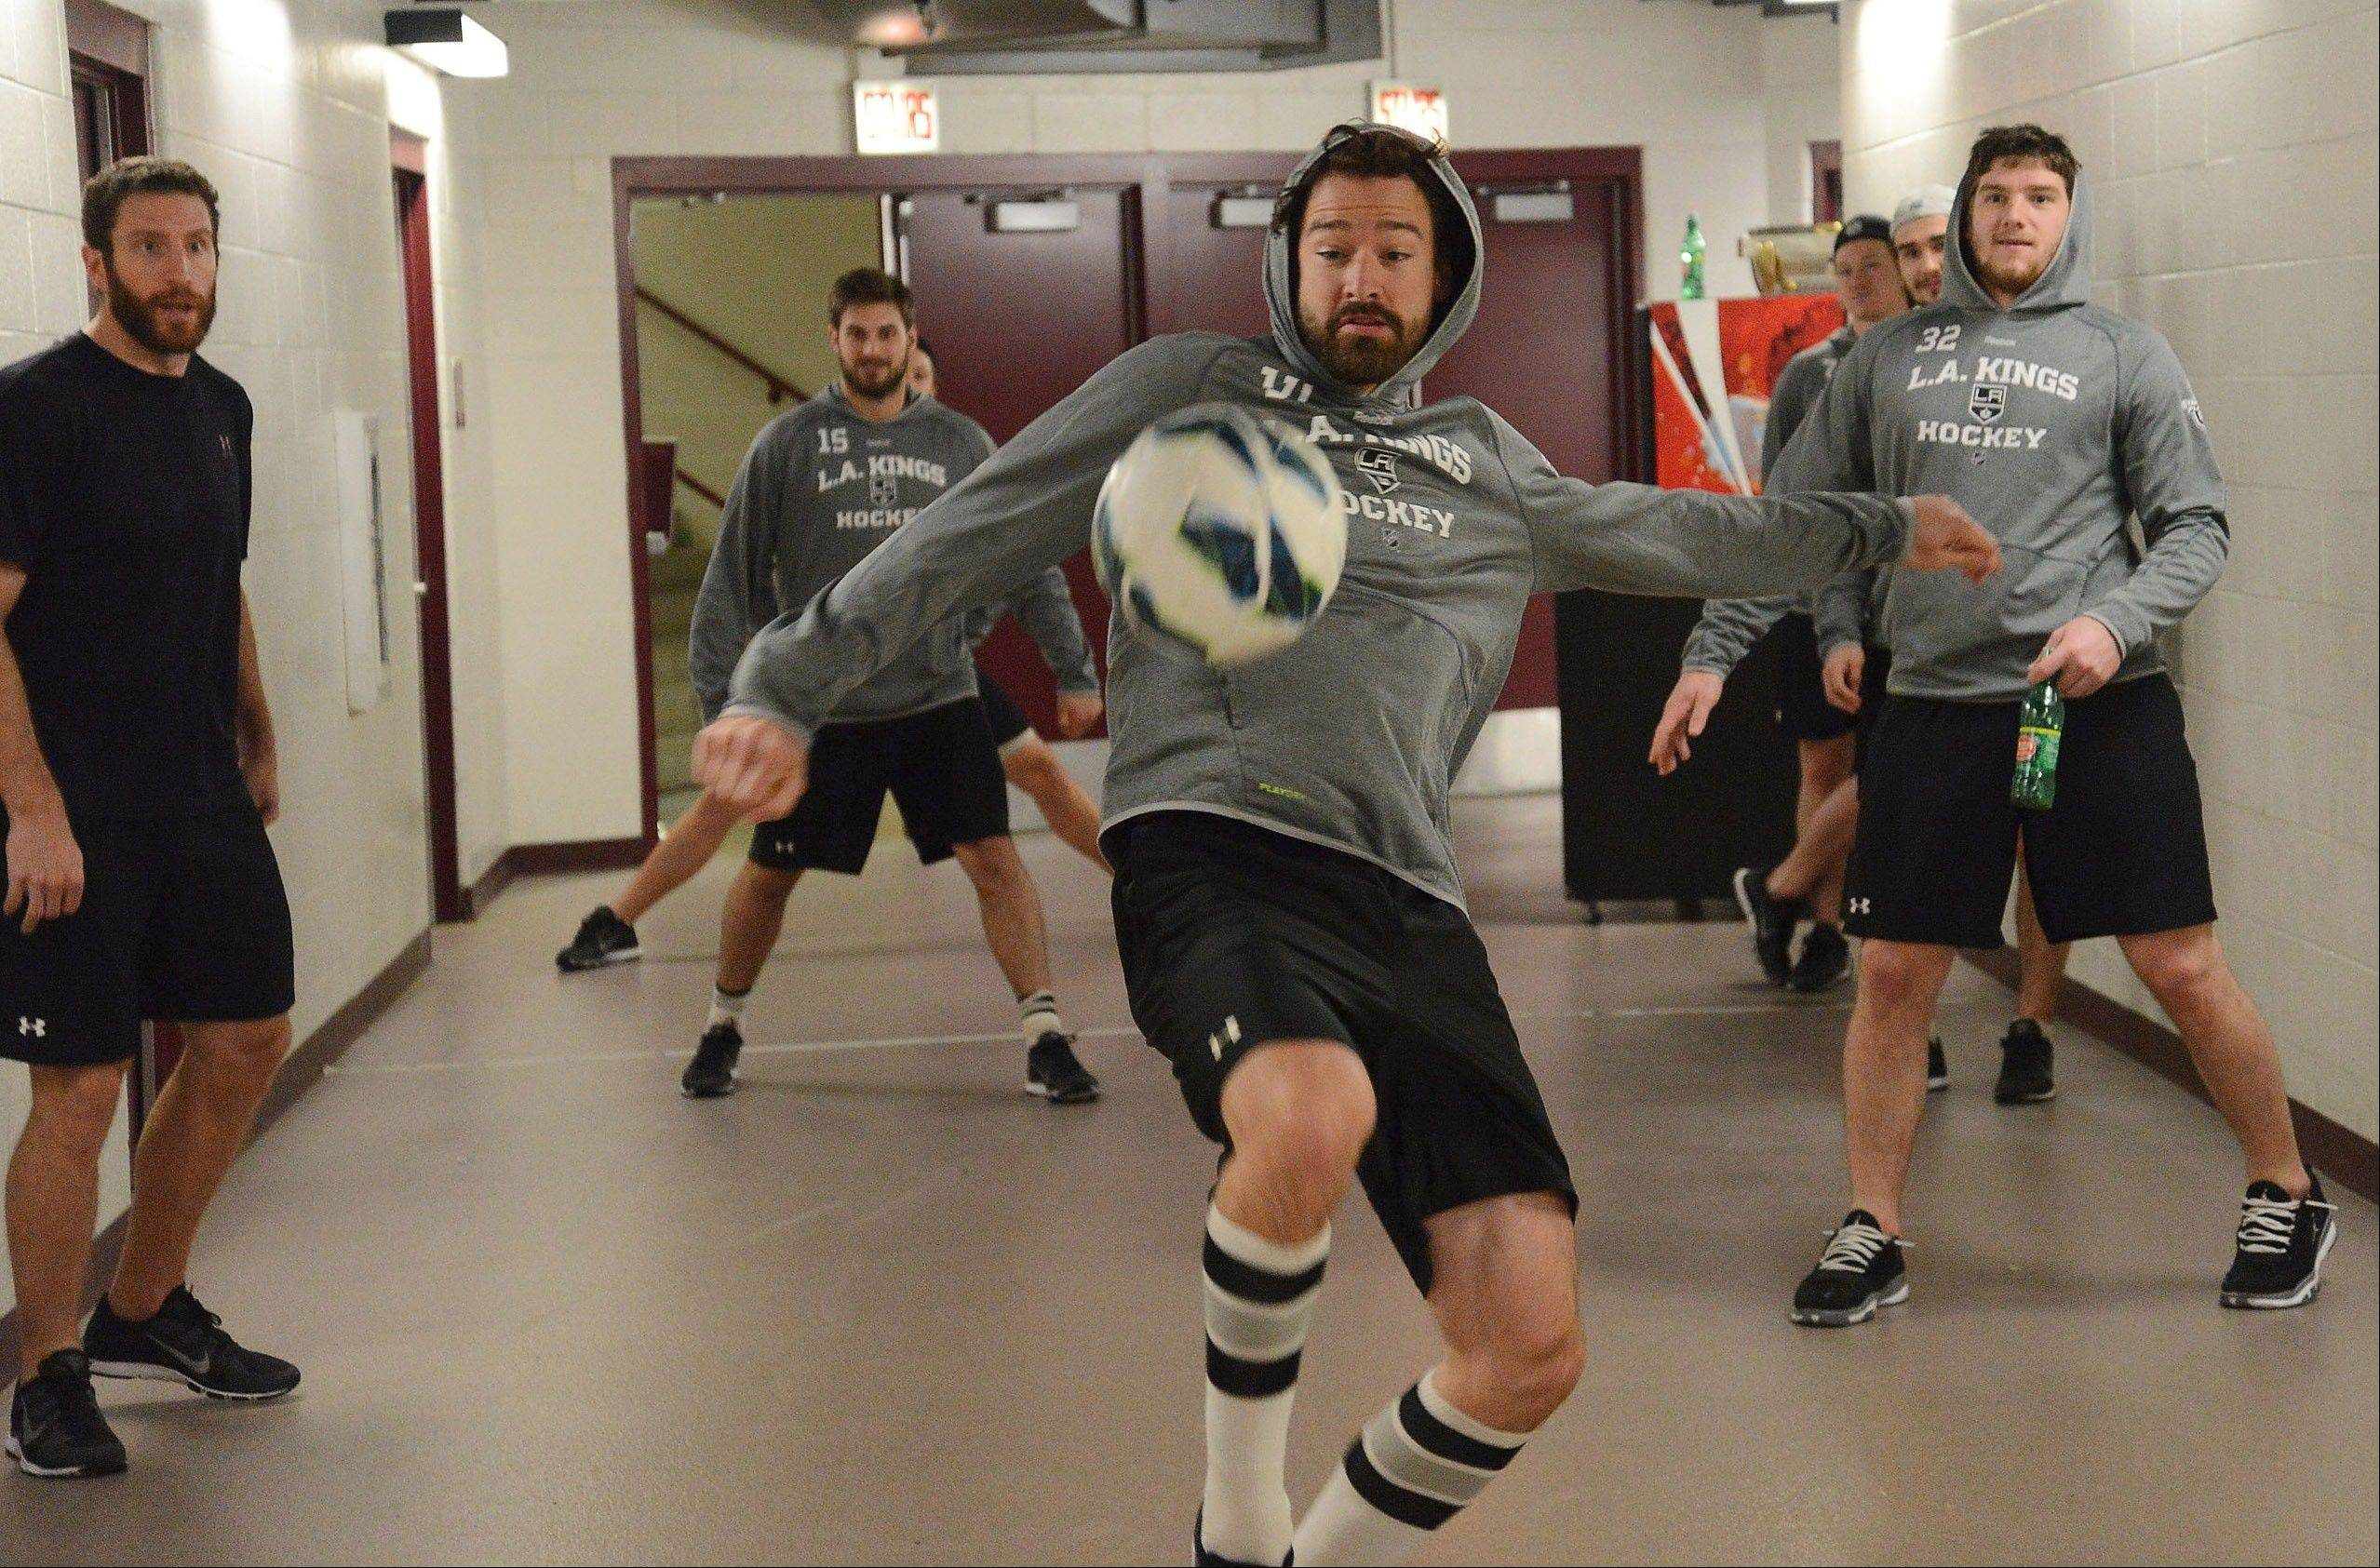 Los Angeles Kings right winger Justin Williams tries to keep the ball in play during a pre-game soccer match in the basement of the United Center, before Game 1 of the Western Conference Finals between the Chicago Blackhawks and the Los Angeles Kings. This has become a tradition for hockey players to loosen up about an hour before puck drop with an impromptu game of soccer or a game of keep away. I used this photo in the weekly Perspective column.